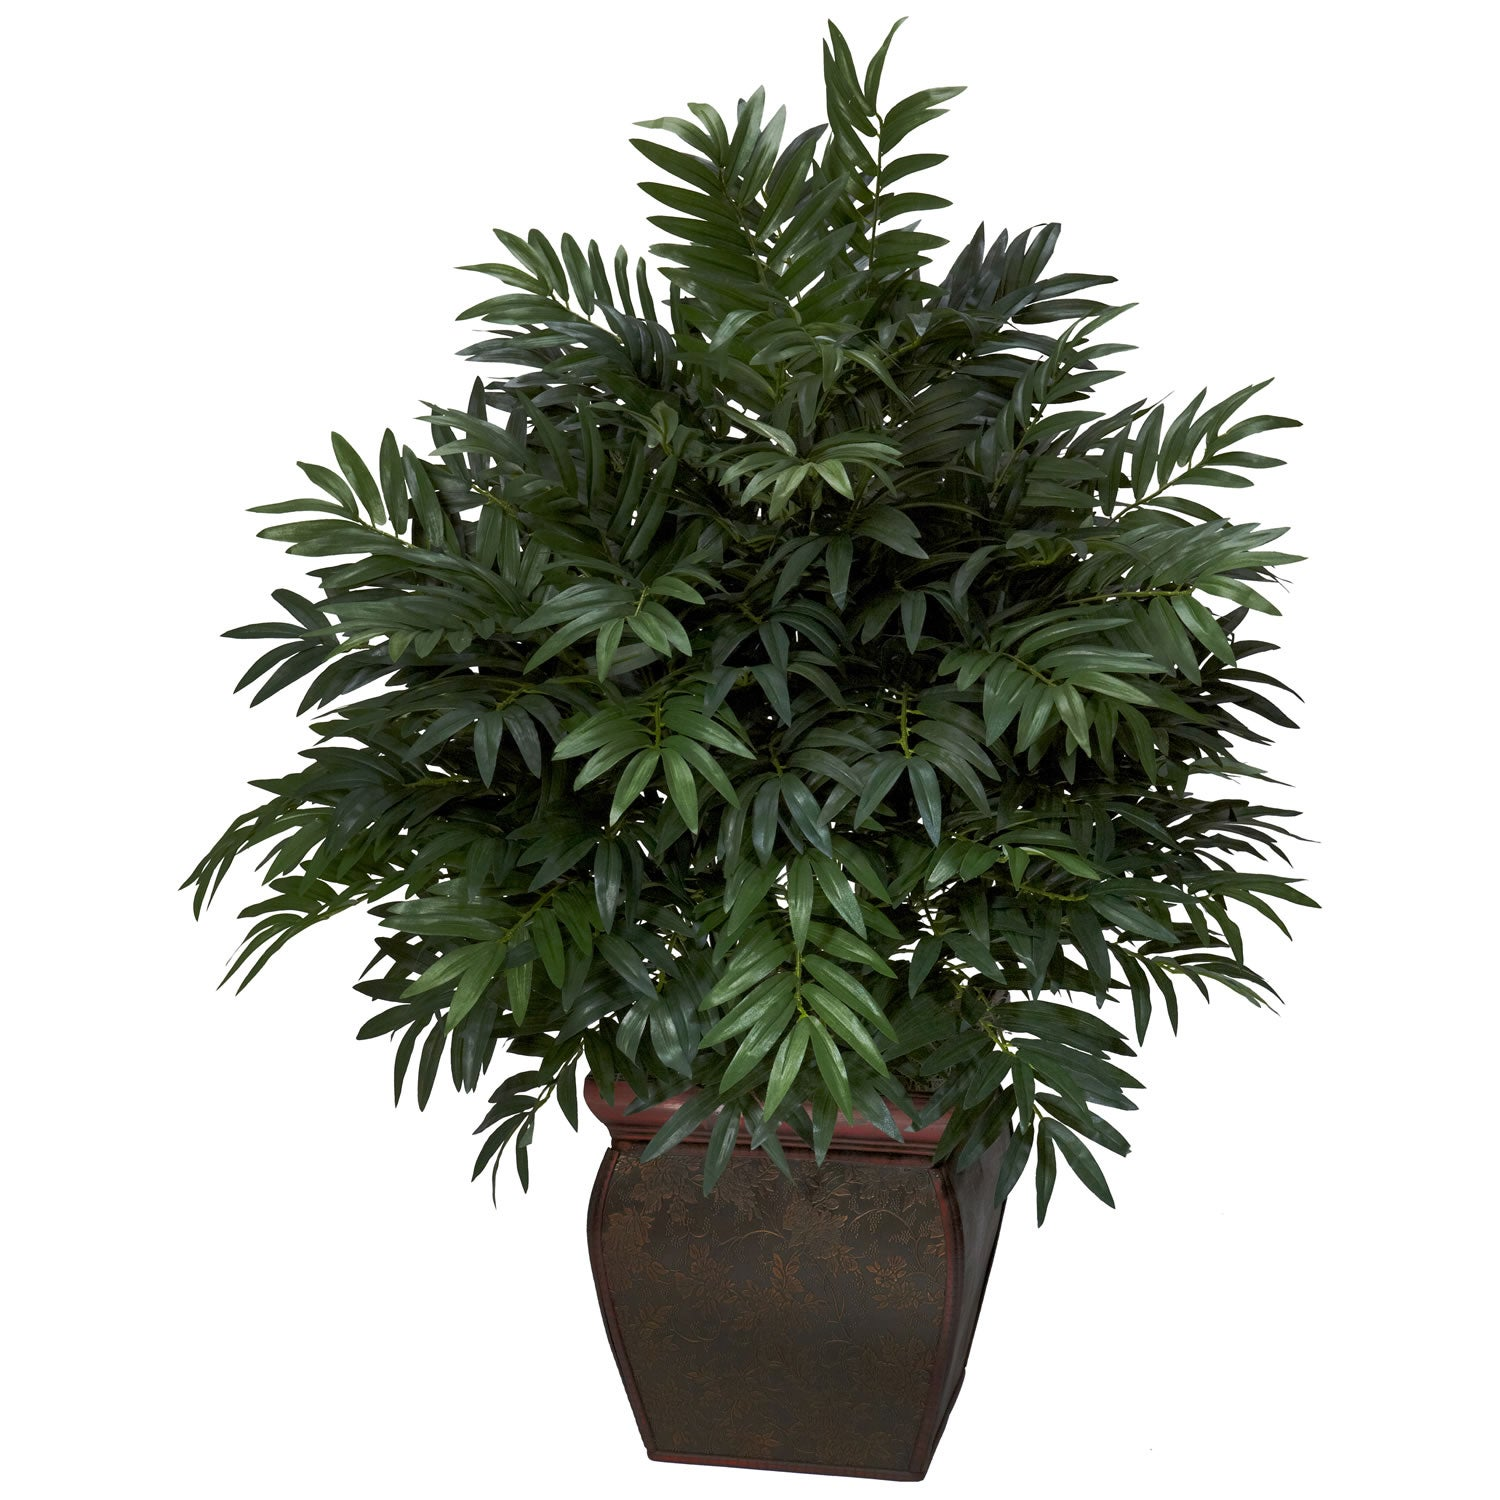 Triple bamboo palm w decorative planter silk plant free for Decoration plants